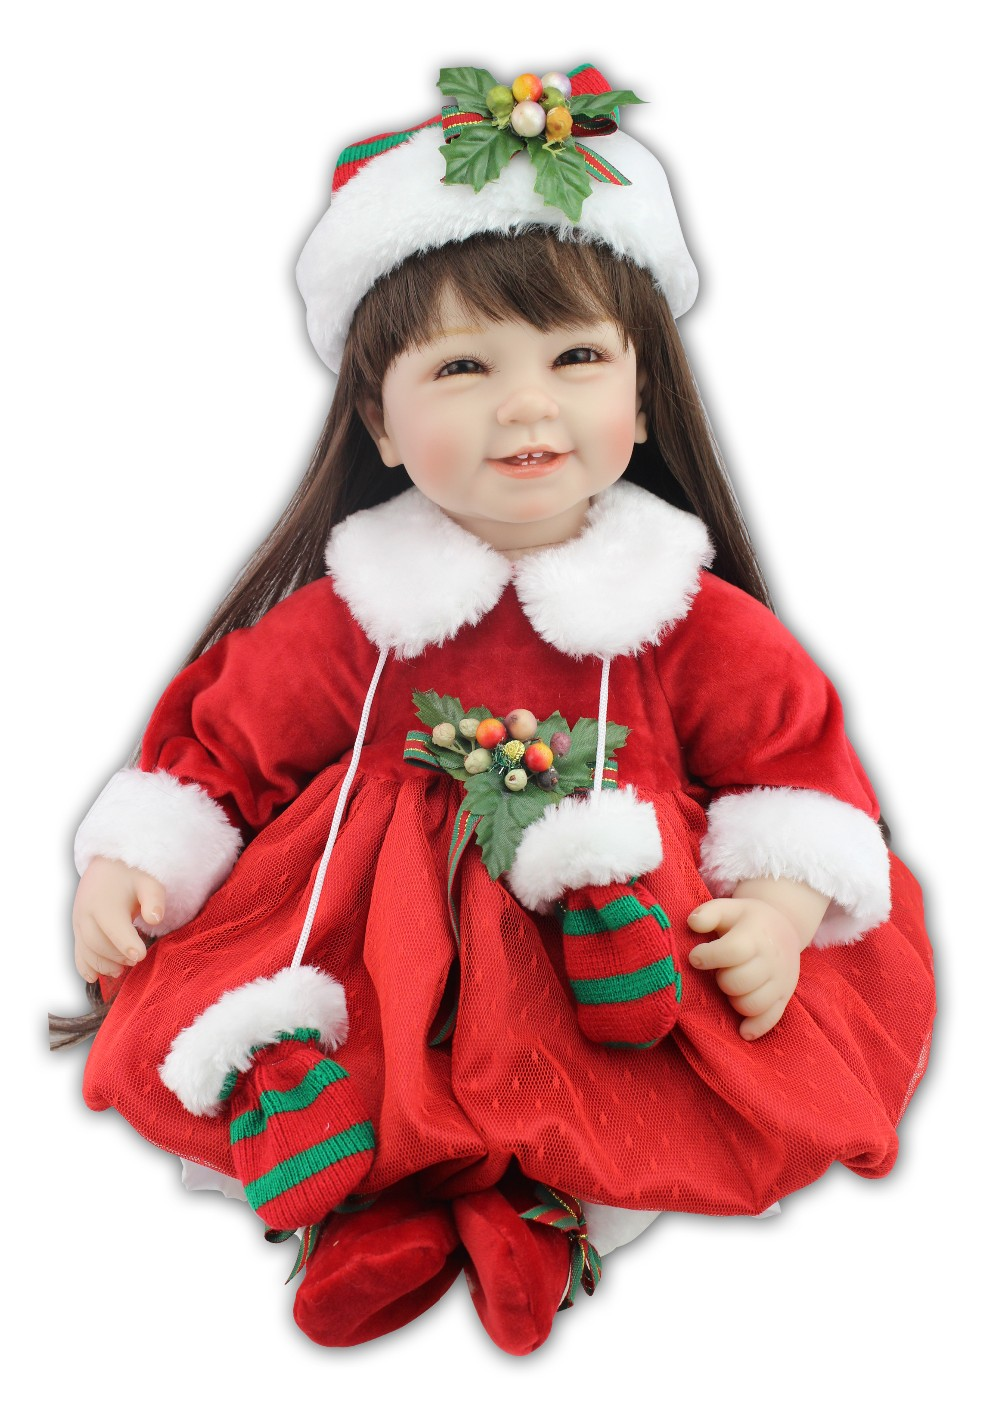 NPKCOLLECTION lifelike reborn toddler doll with Christmas hat and Red skirt fashion doll girl's gift 2017 NEW design hot sale new hot 18cm one piece donquixote doflamingo action figure toys doll collection christmas gift with box minge3